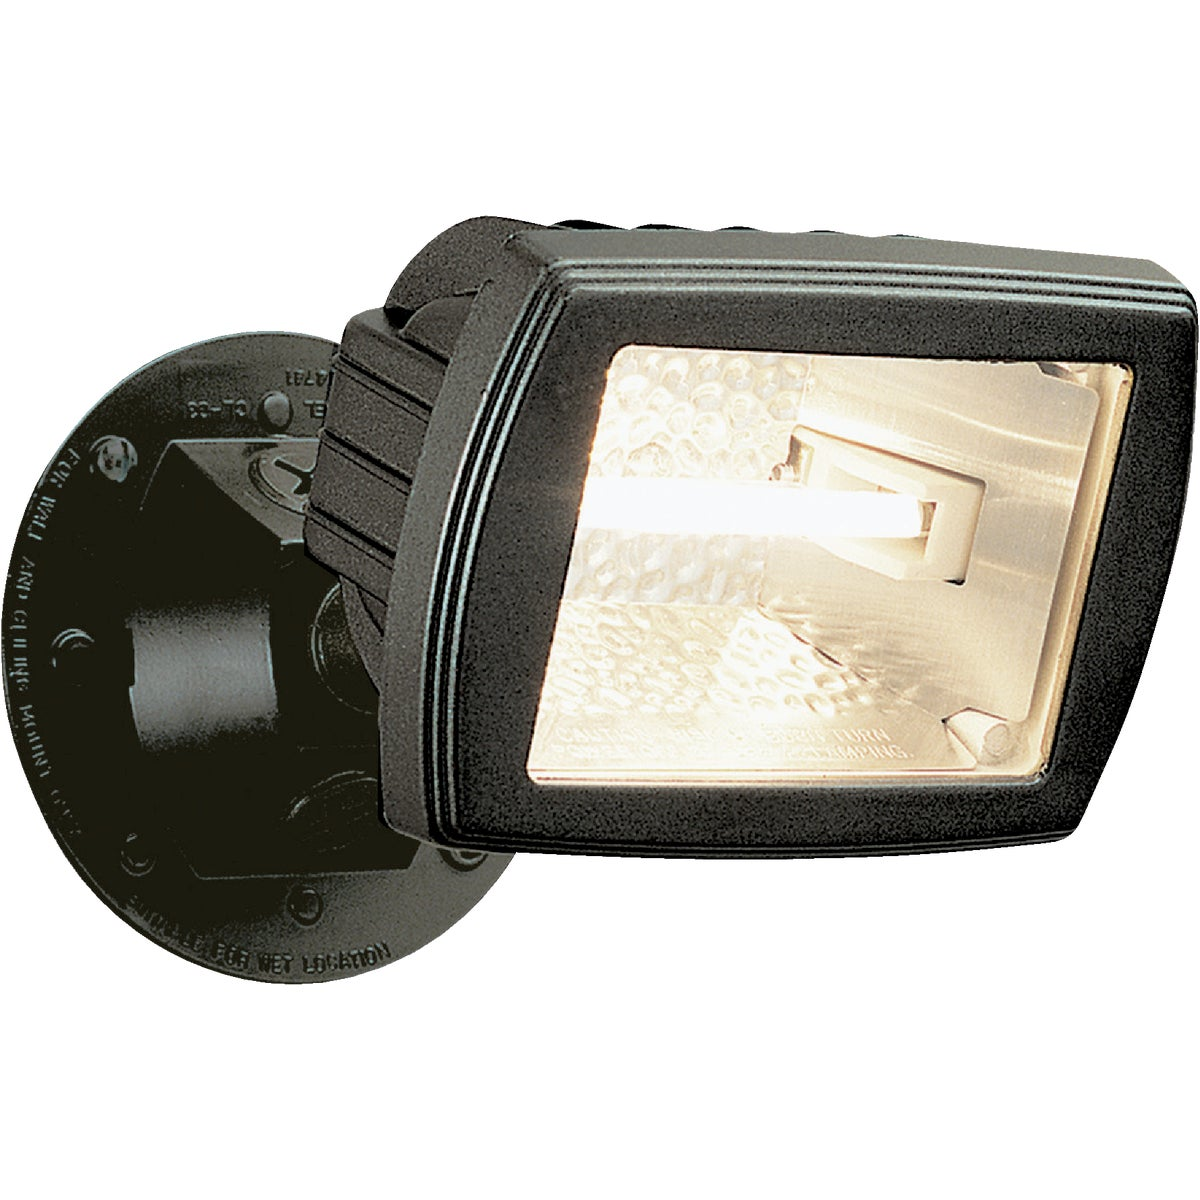 150W BRZ QTZ FLOODLIGHT - MQF150 by Cooper Lighting